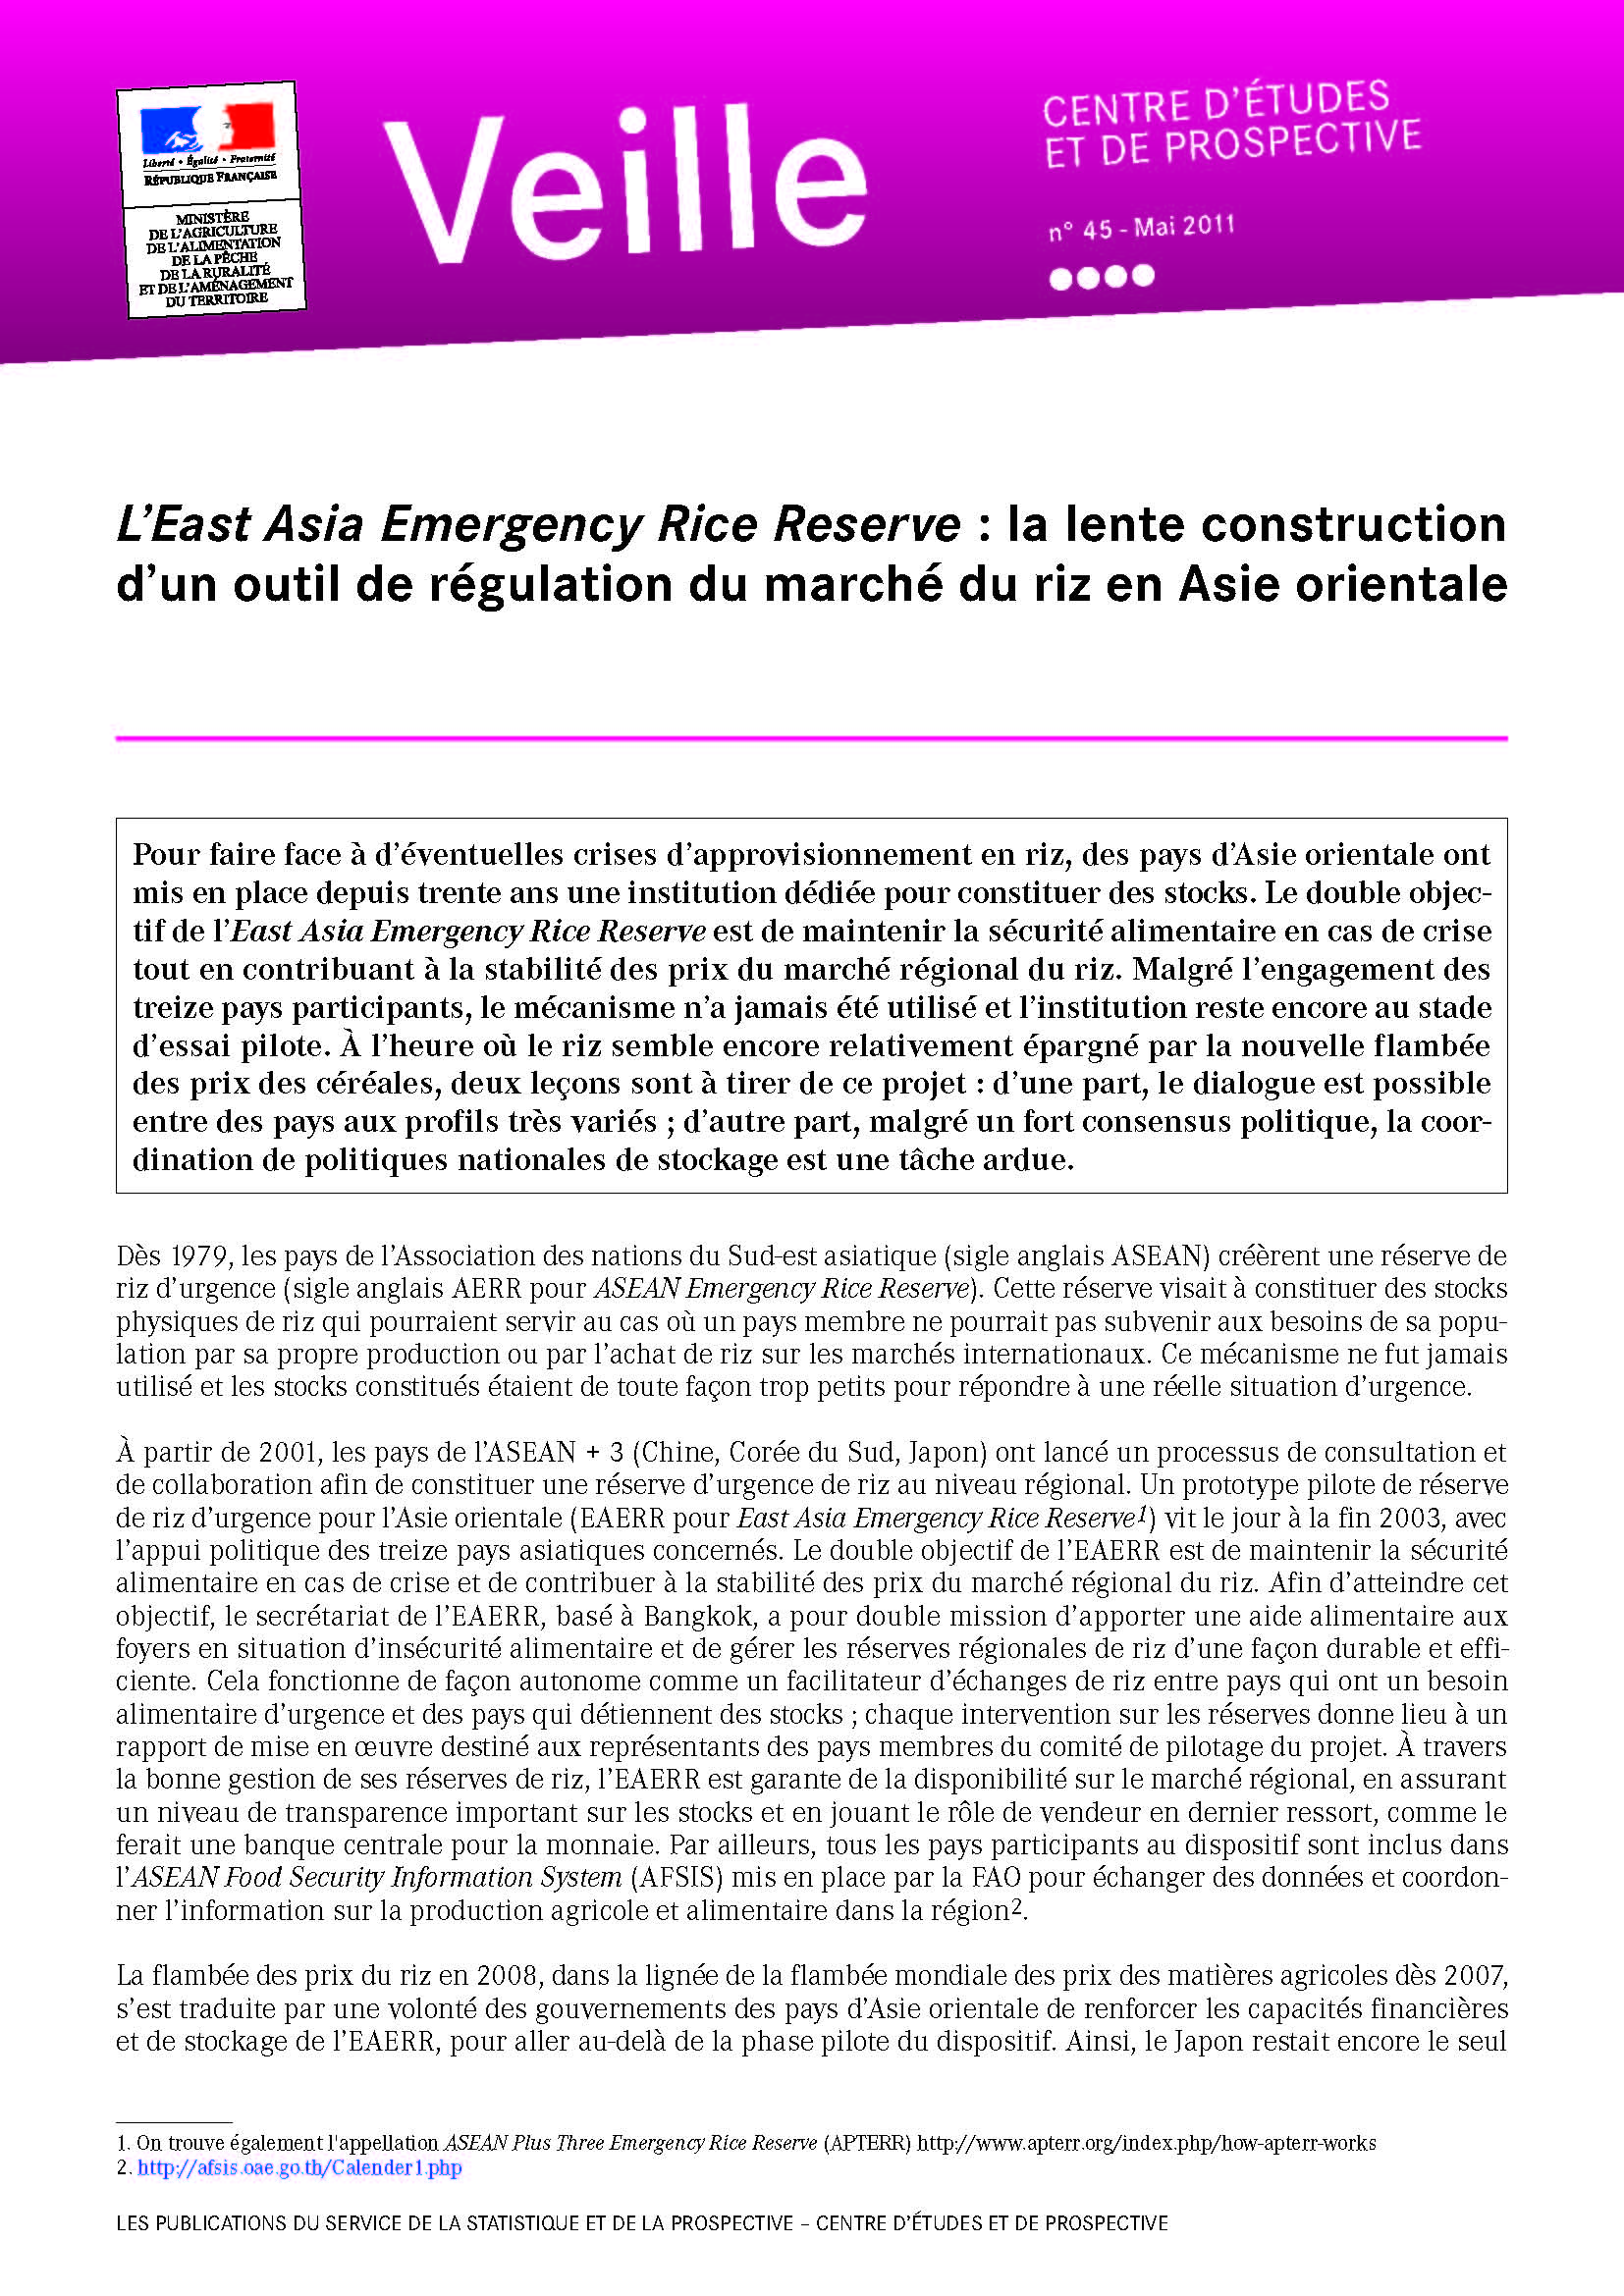 L'East Asia Emergency Rice Reserve : la lente construction d'un outil de régulation du marché du riz en Asie orientale